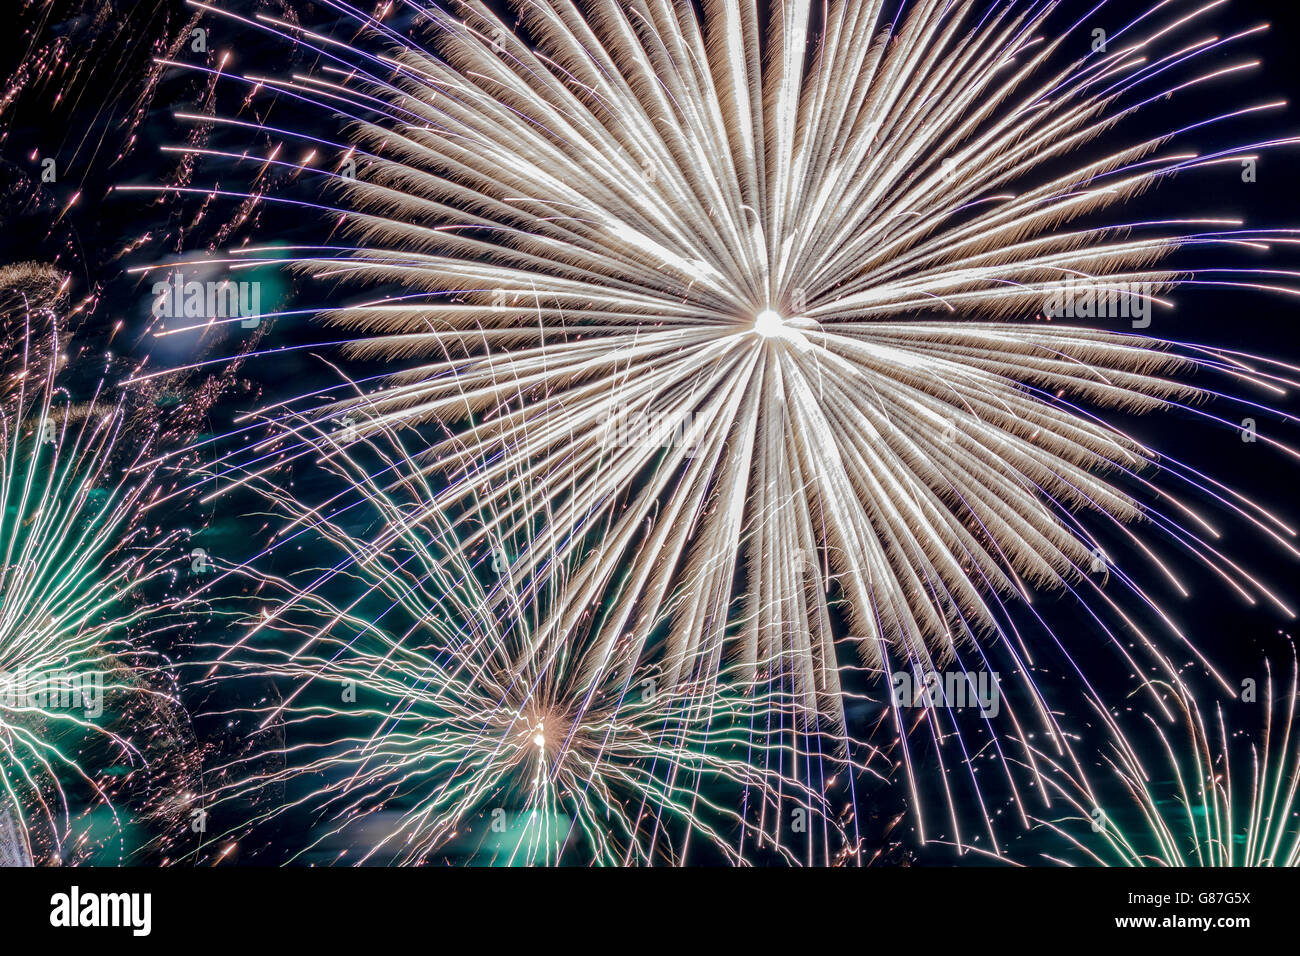 Large white burst of fireworks with blue spikes surrounded by green and aqua bursts - Stock Image